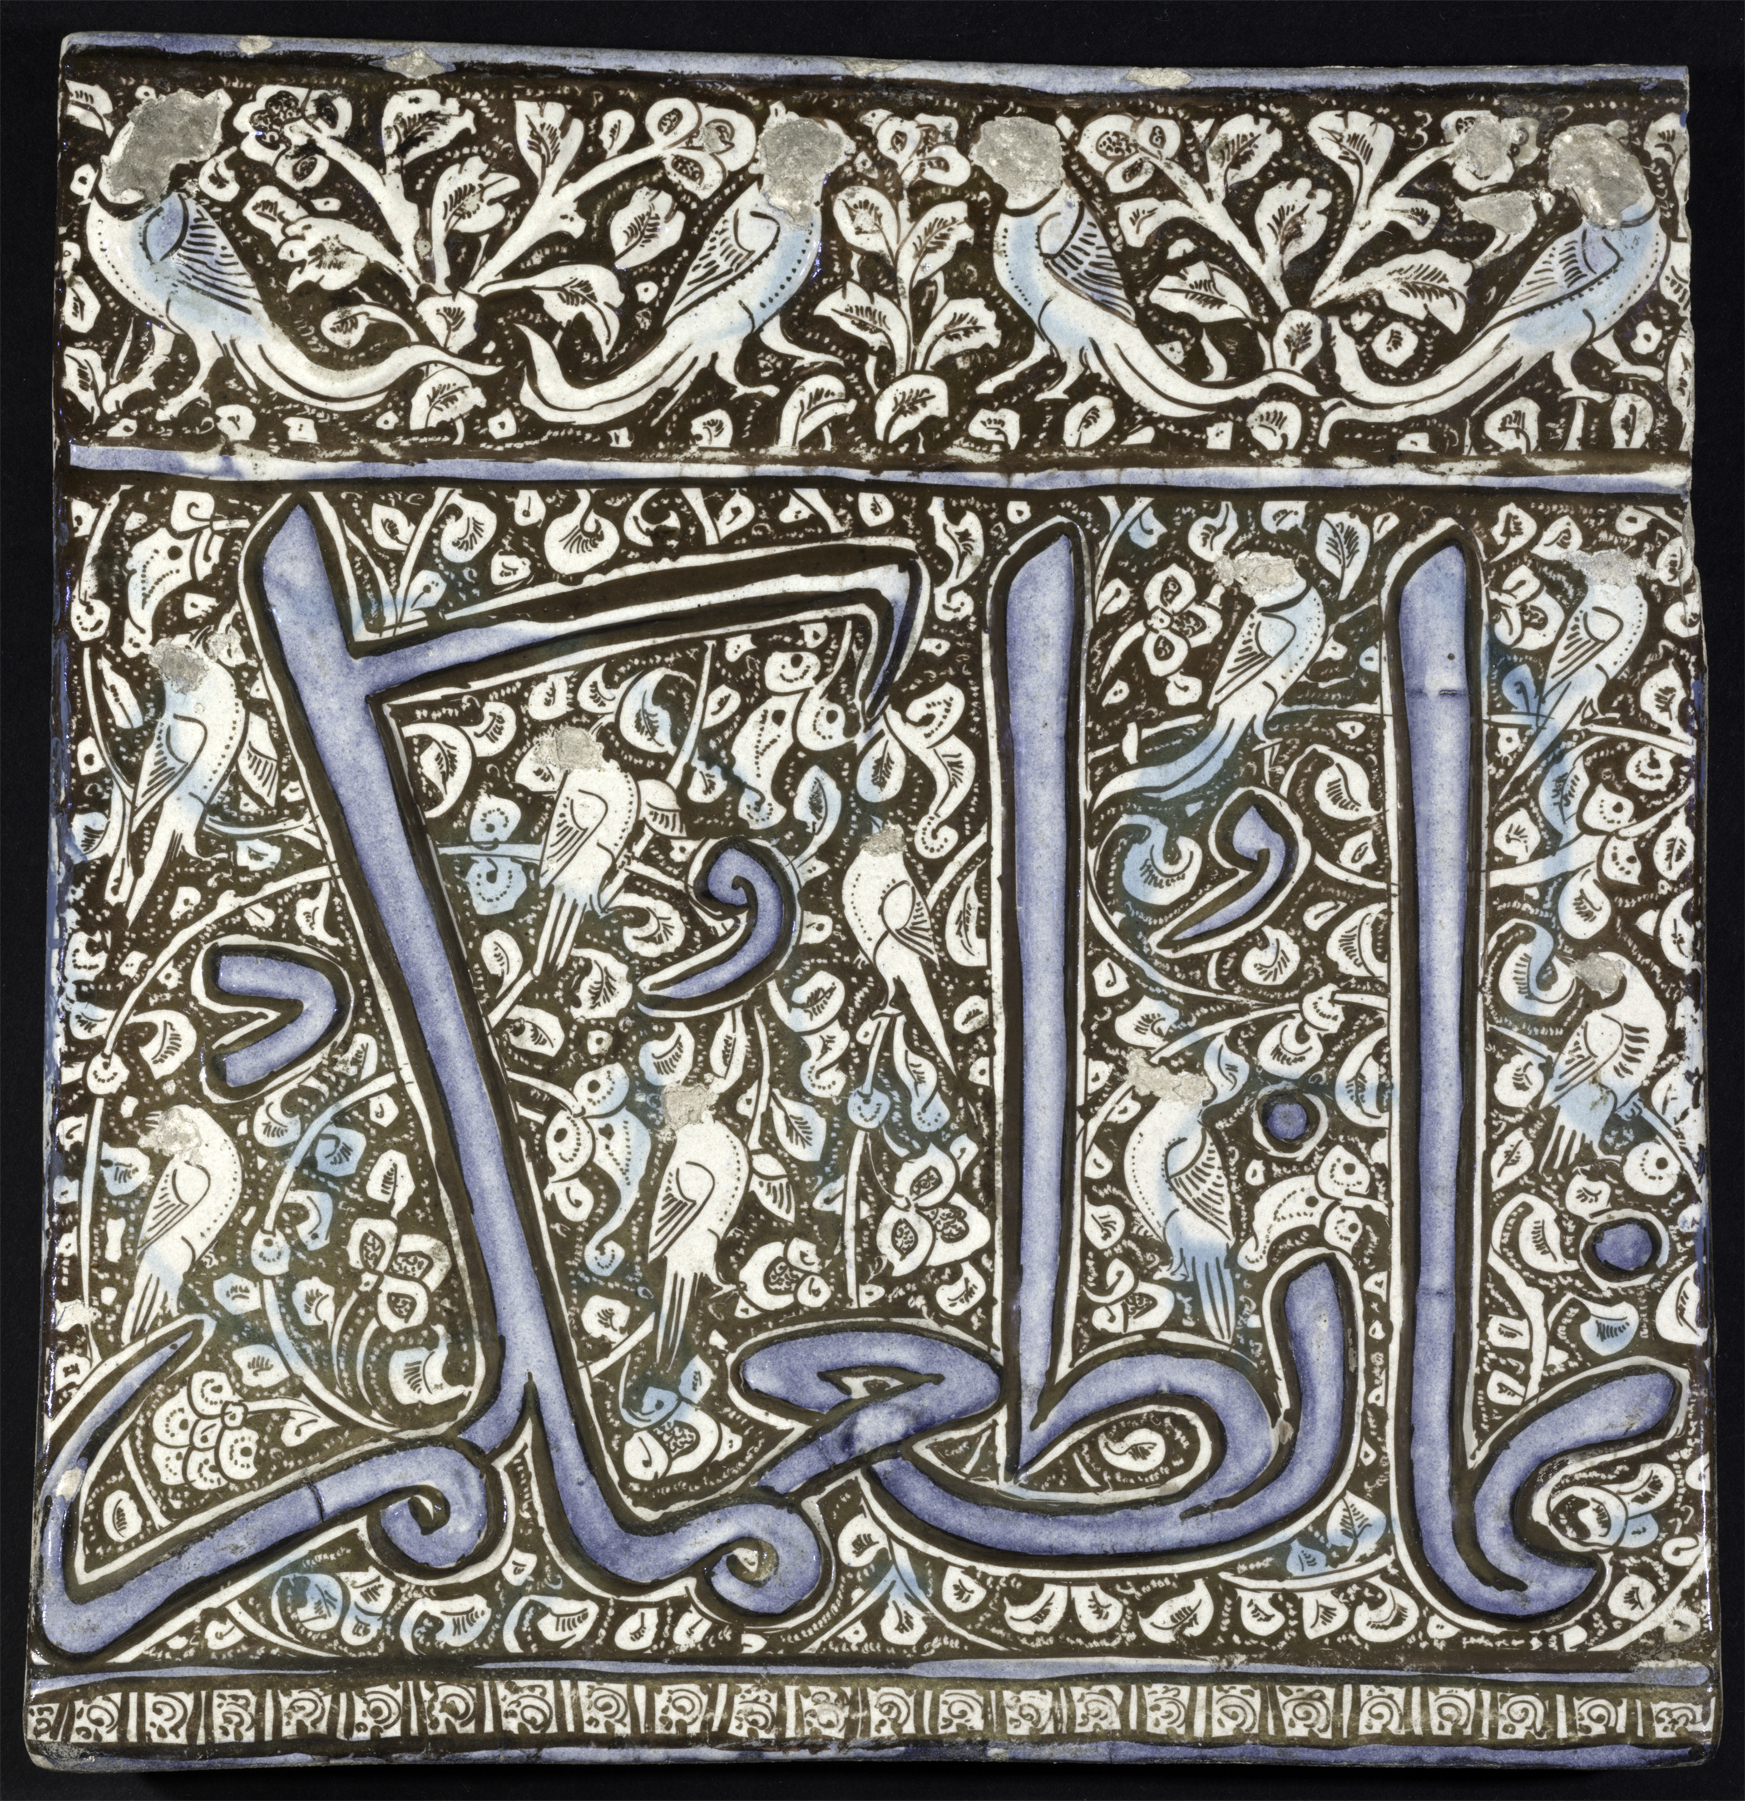 Image: Iranian Tile. Tile with inscription from the Qur'an, ca. 1308. Earthenware with lustre decoration and blue glaze. Herbert F. Johnson Museum of Art Collection.